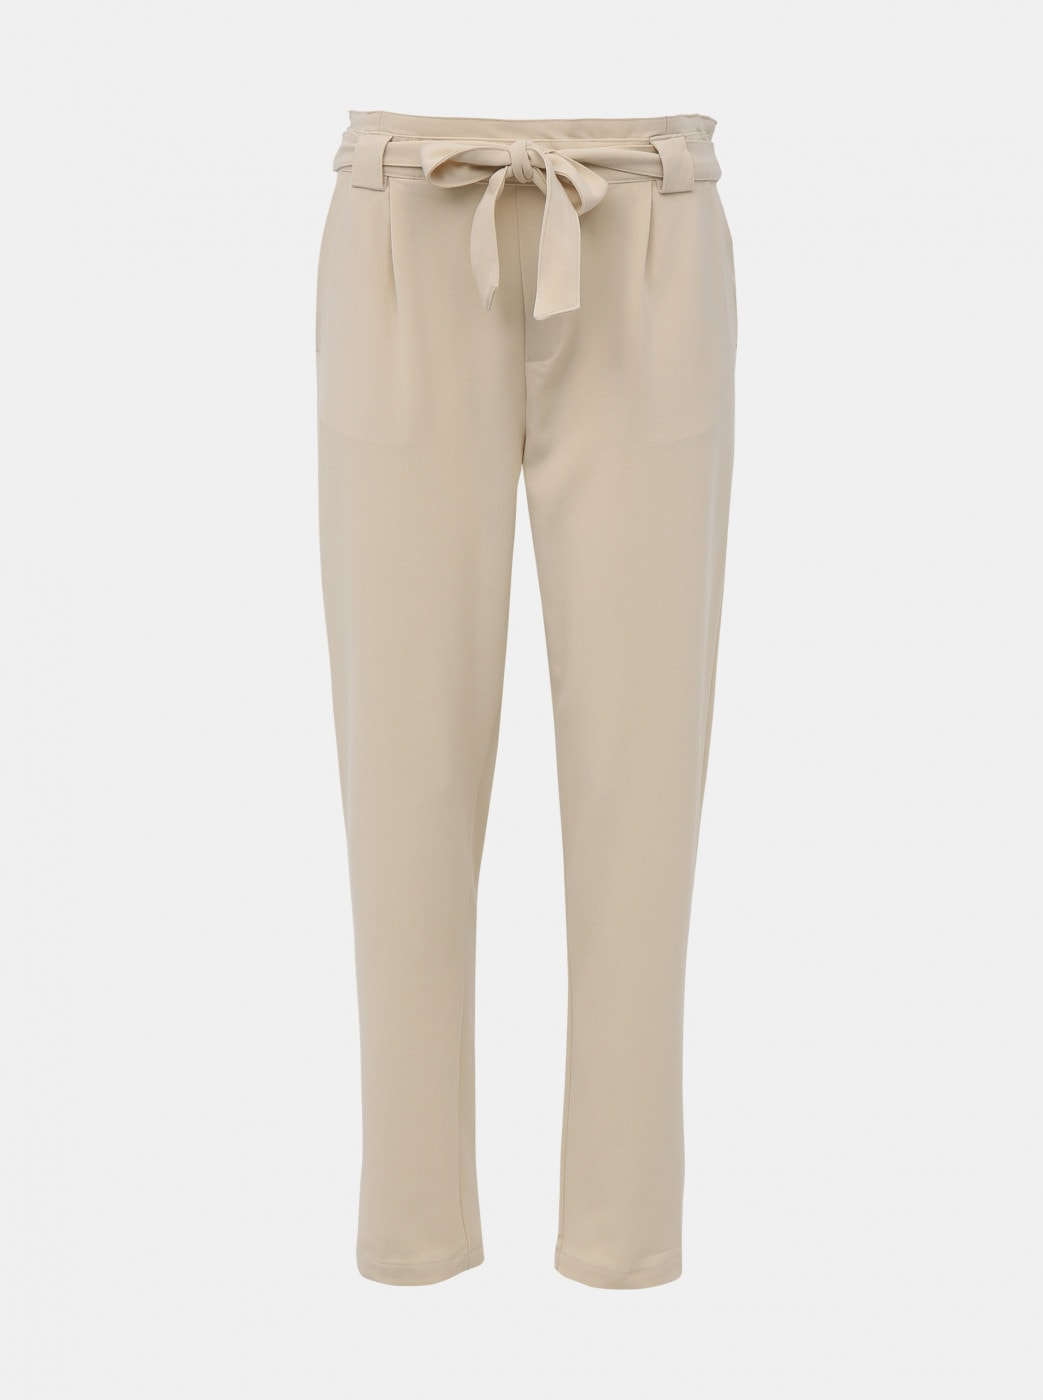 Jacqueline de Yong Dakota Cream Pants